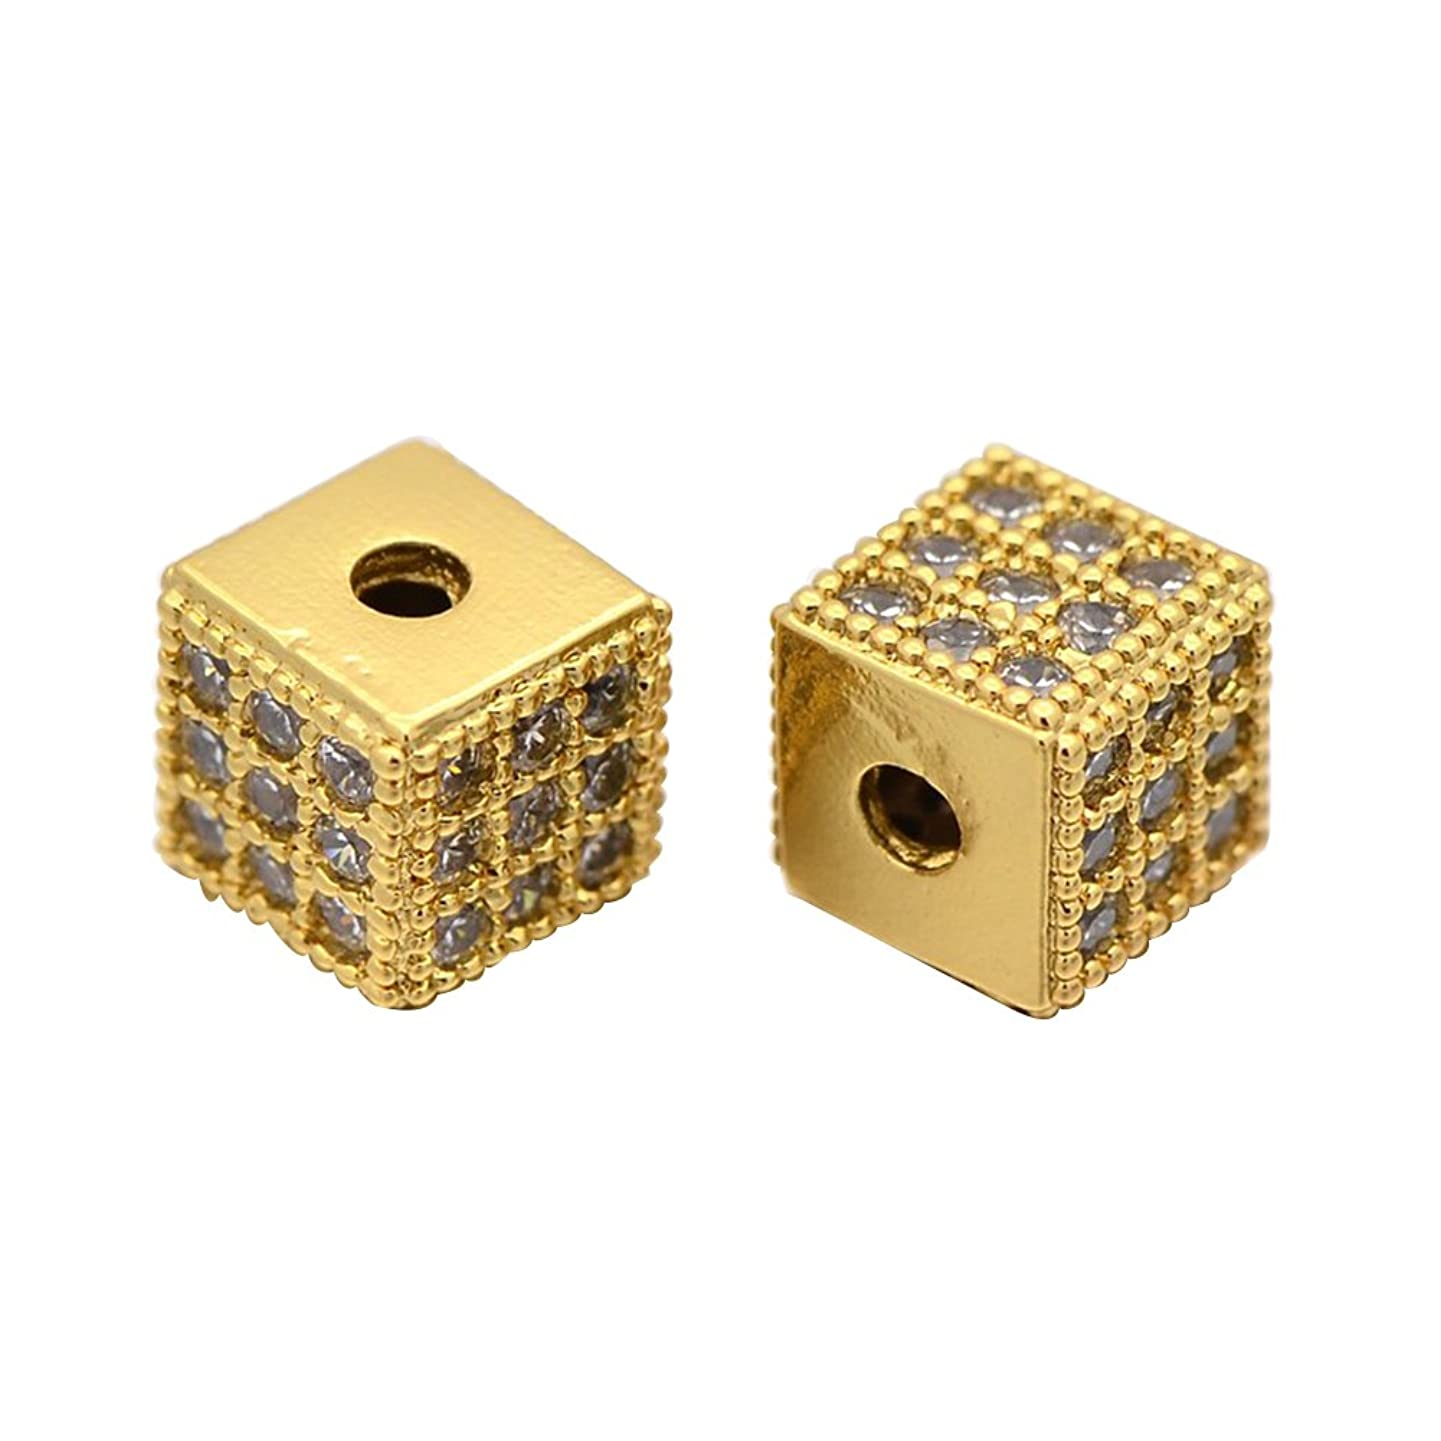 NBEADS 1PCS Clear Zircon Gemstones Brass Micro Pave Square Cube Gold Connector Charm Bead for Bracelet Necklace Earrings Jewelry Making Crafts Design, 6x6x6mm, Hole: 1.5mm